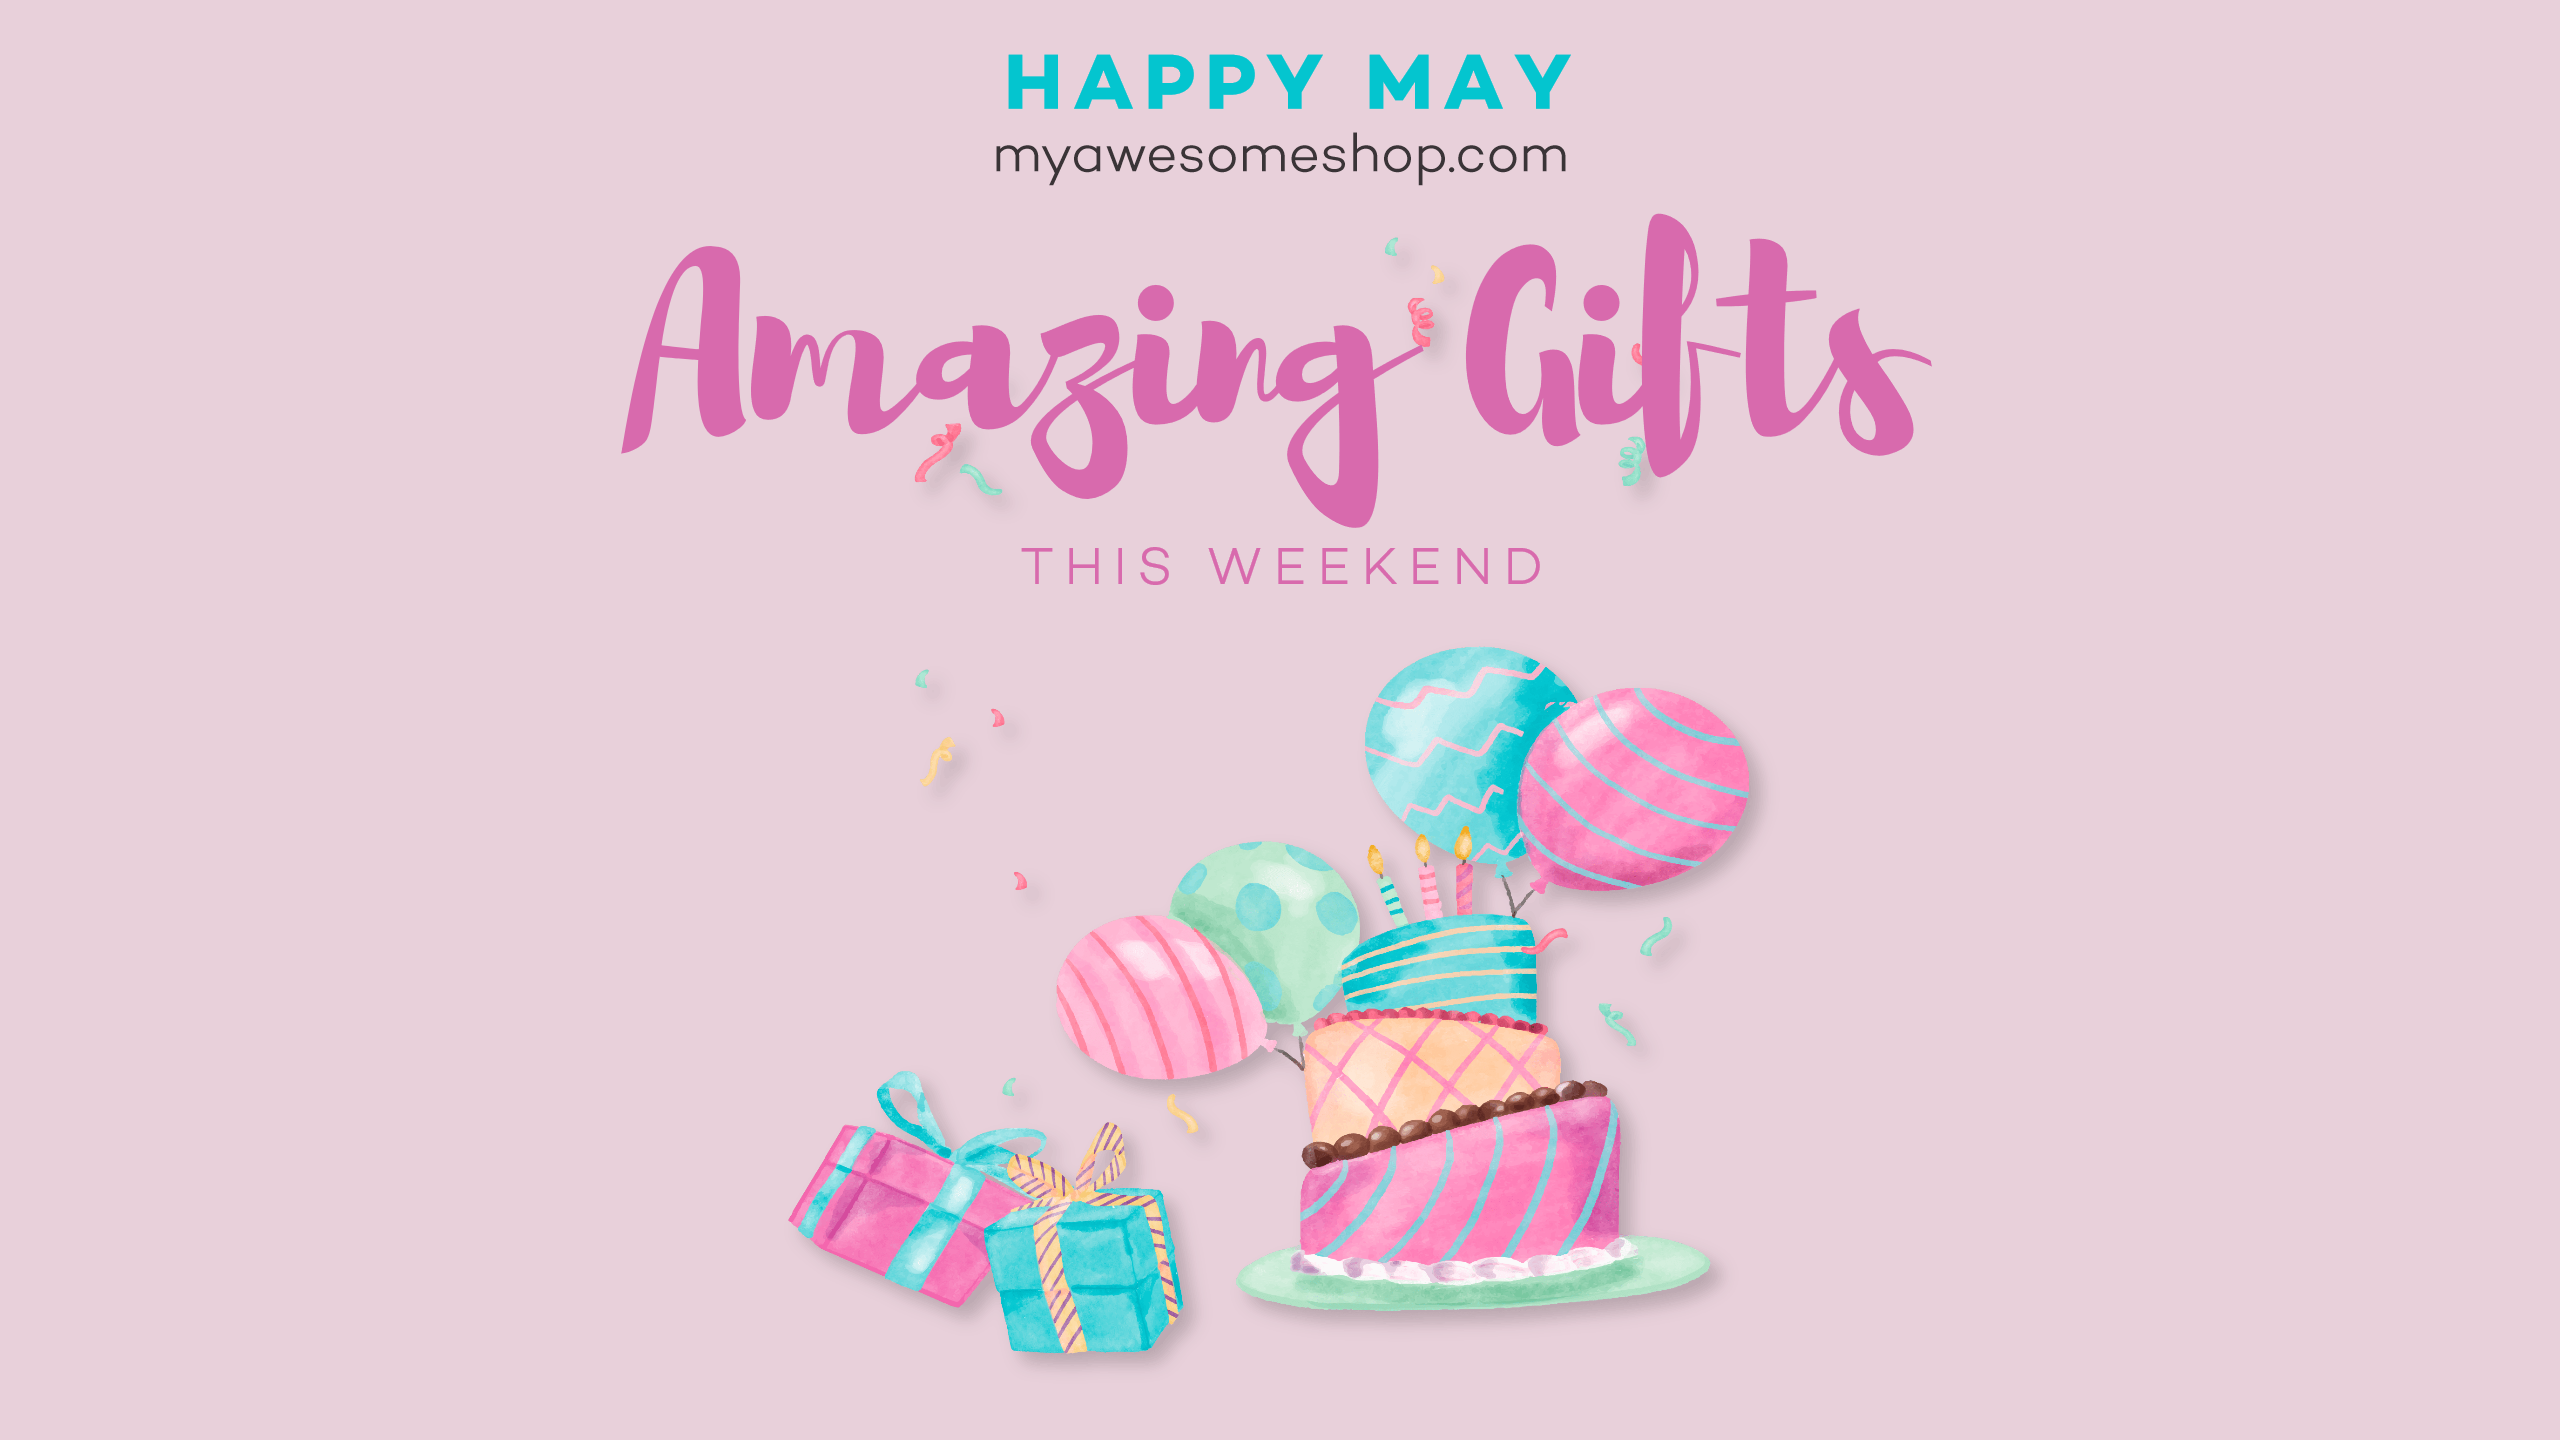 Happy May - Amazing Gifts this Design  Template